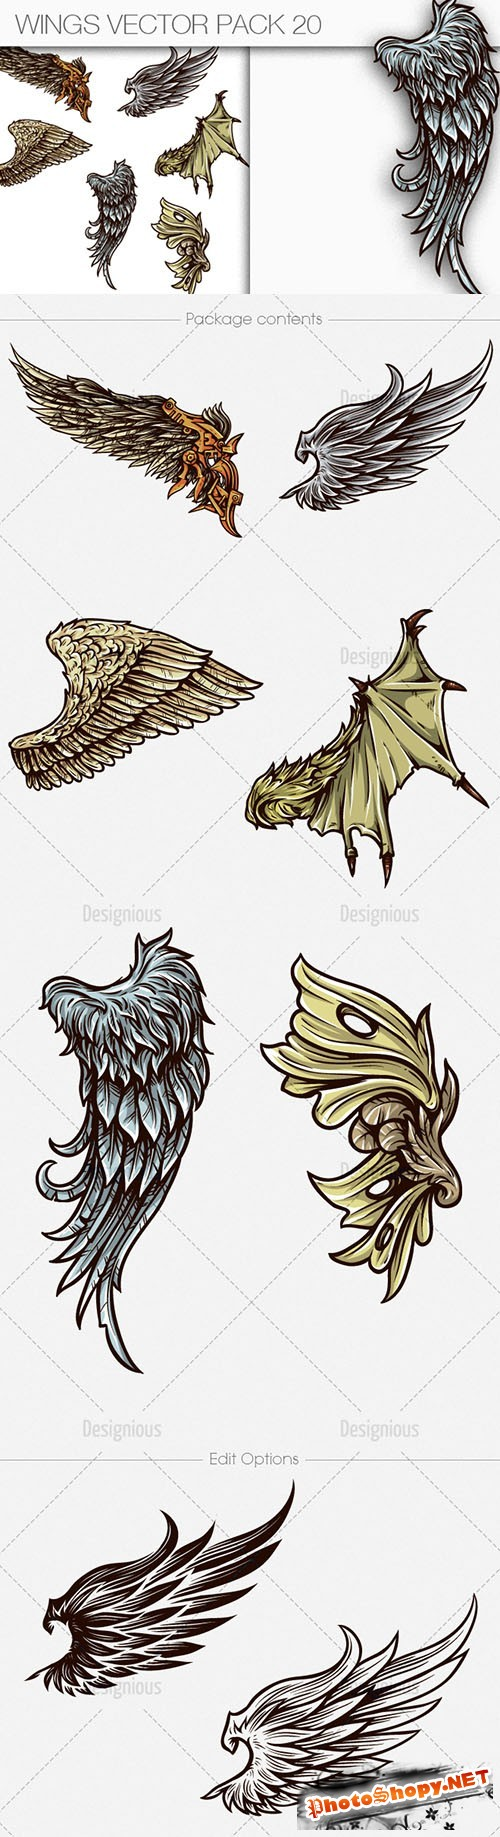 Wings Vector Illustrations Pack 20